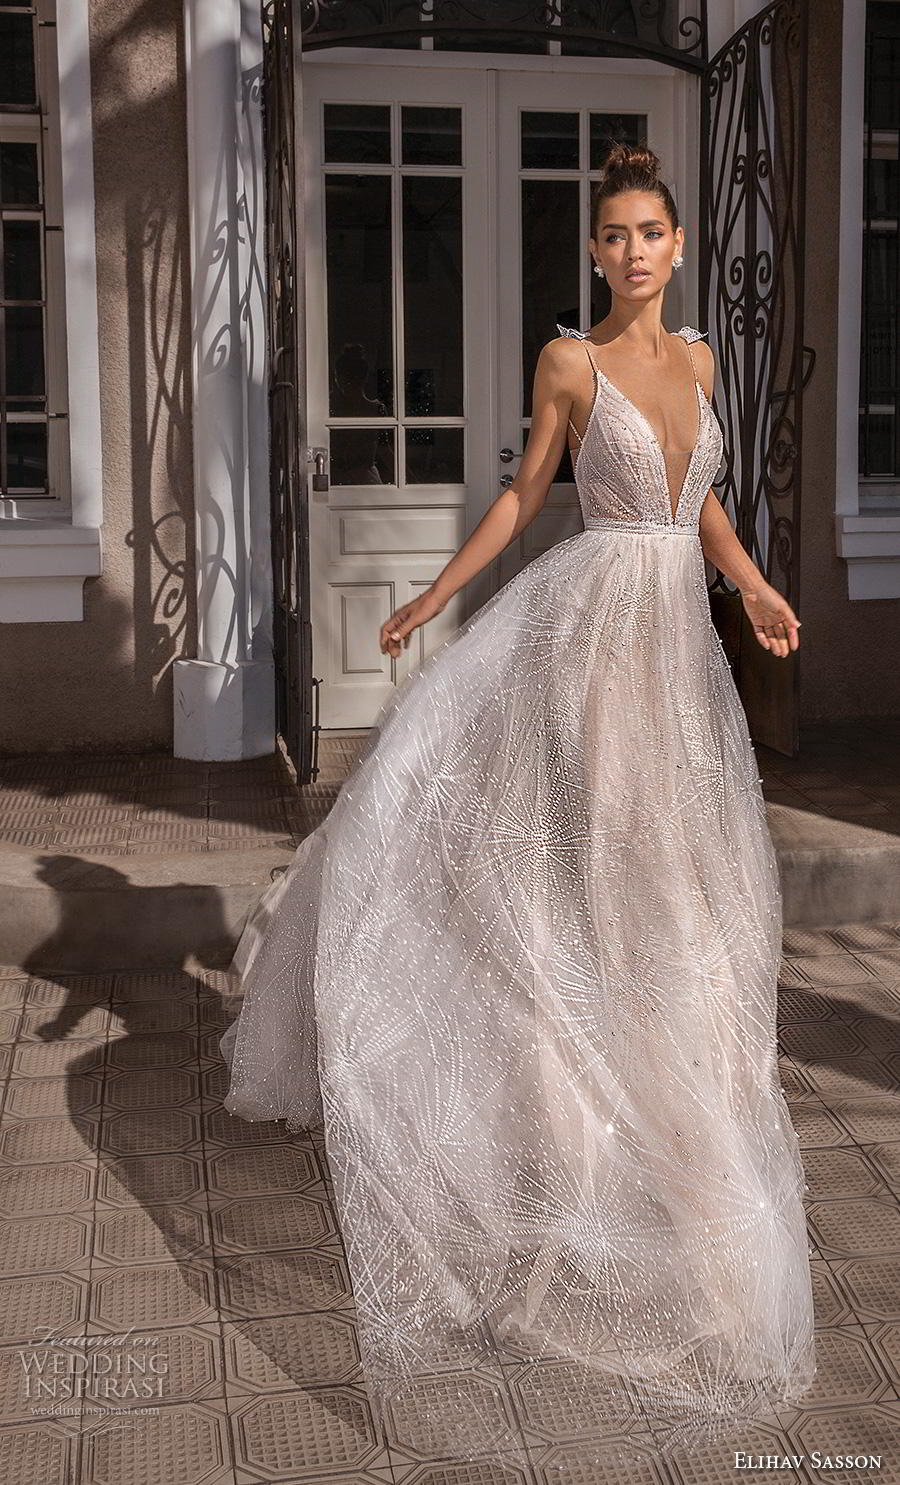 elihav sasson 2019 bridal sleeveless spaghetti strap deep v neck full embellishment glitzy romantic soft a line wedding dress backless royal train (5) mv